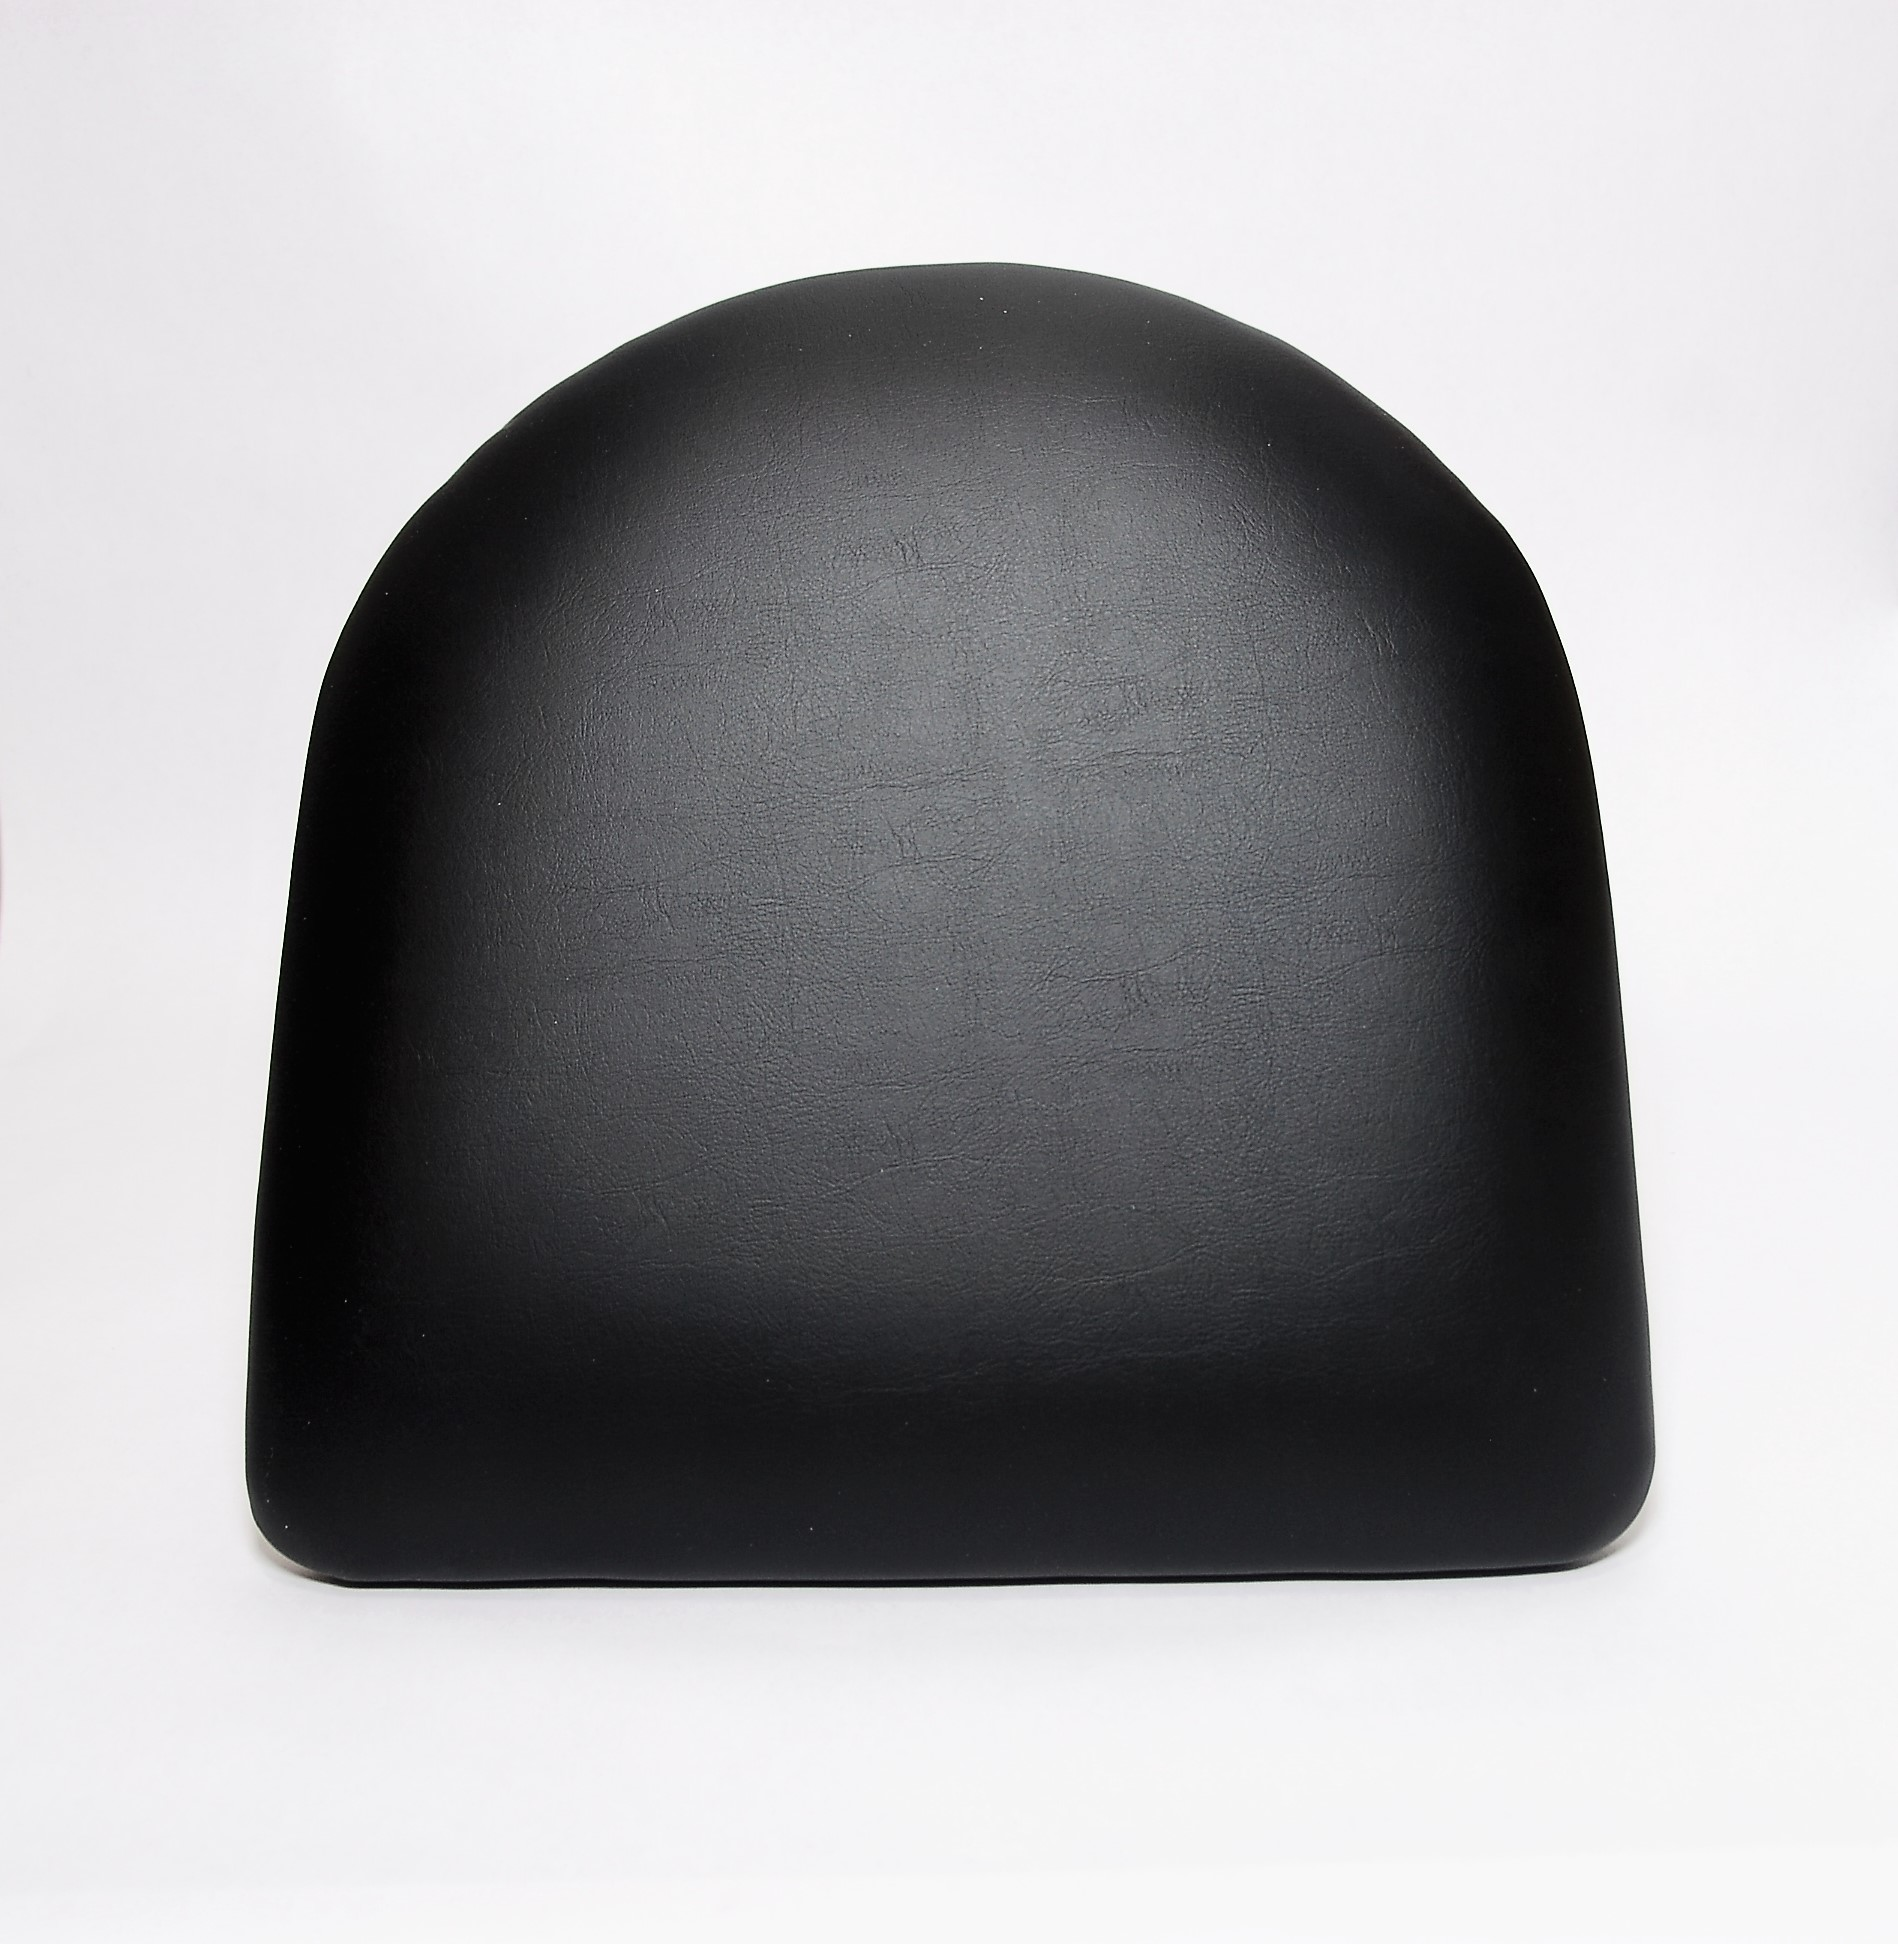 Iron Guard-Iron Guard-Black Cushion Seat, 2160/ 2301| Public Kitchen Supply